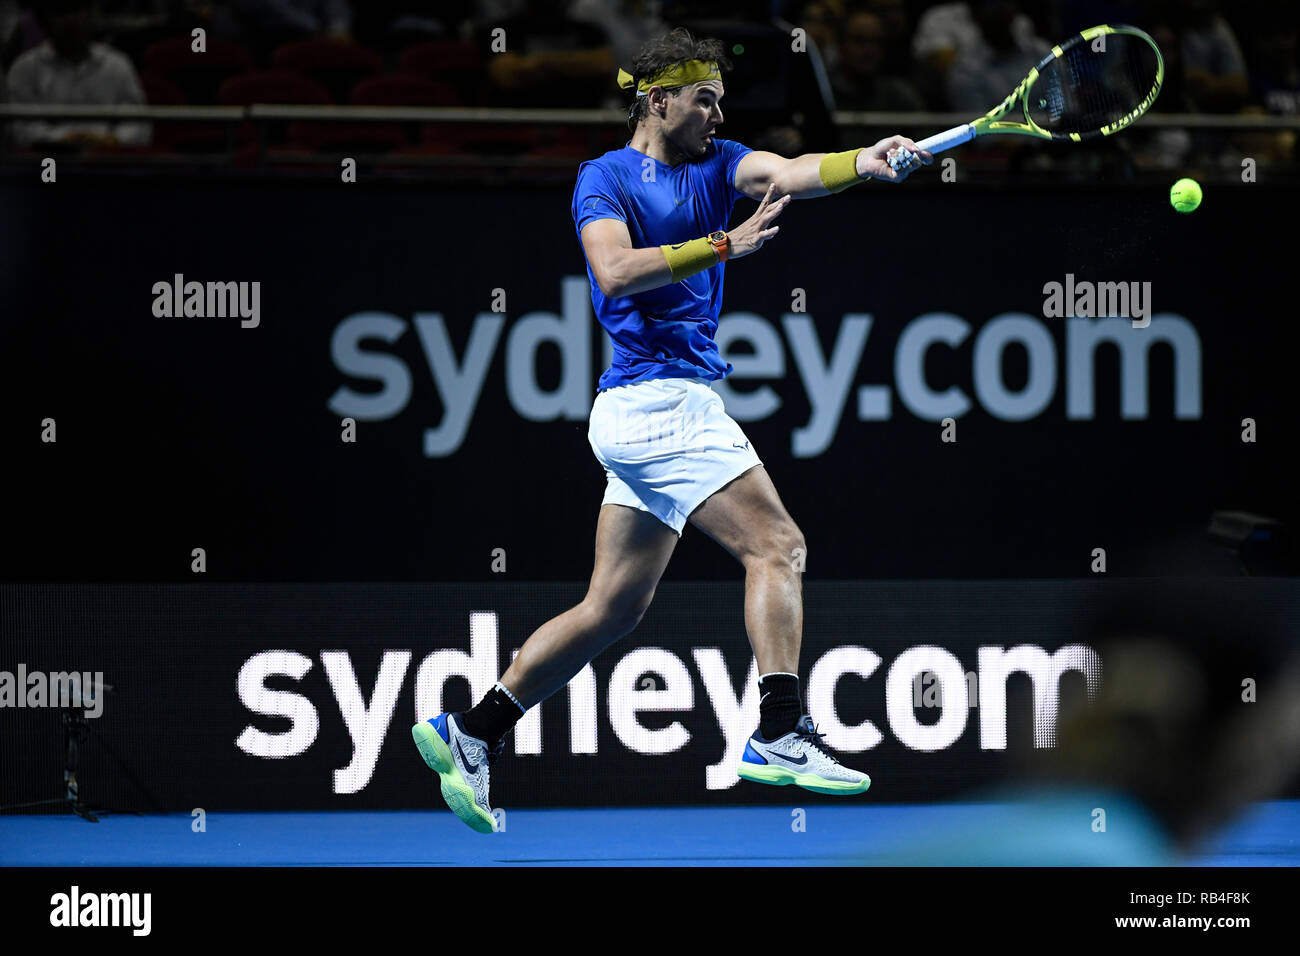 Qudos Bank Arena, Sydney, Australia. 7th Jan, 2019. Fast4 Tennis Showdown; Rafael Nadal of Spain hits a forehand to Nick Kyrgios of Australia Credit: Action Plus Sports/Alamy Live News - Stock Image